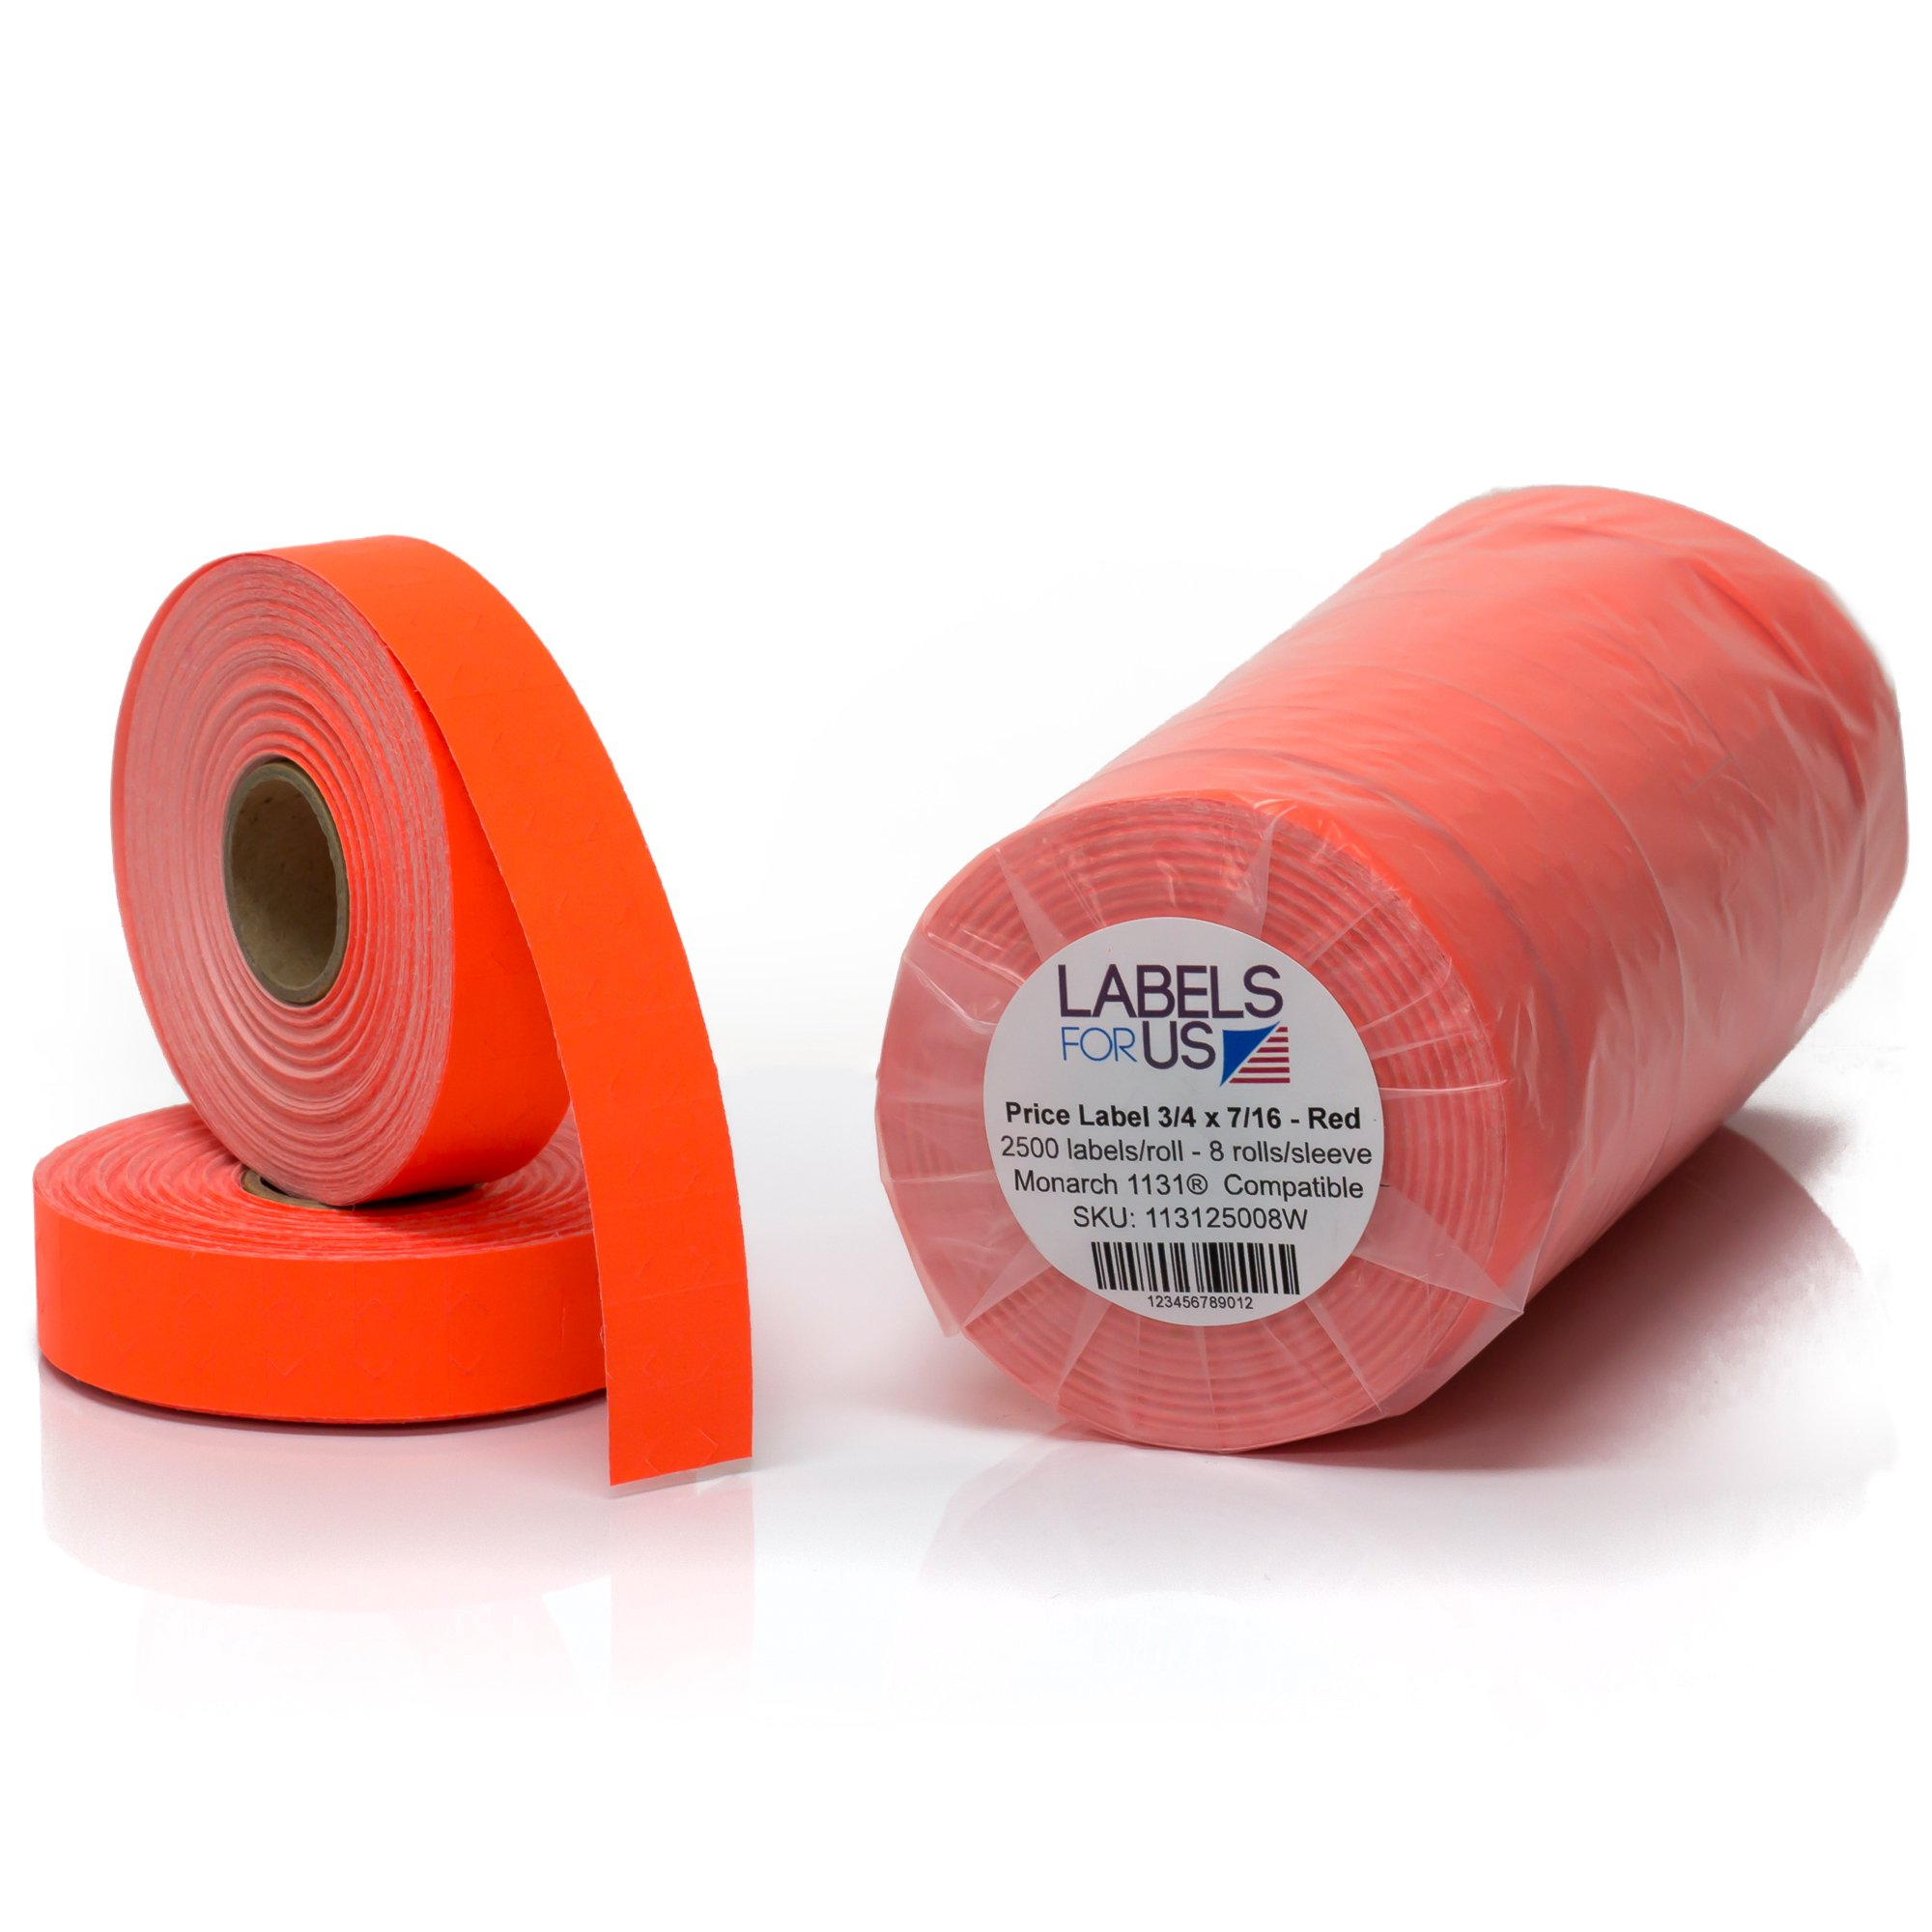 Monarch 1131 Compatible Labels - Fluorescent Red - 20,000 Labels - Pack with 8 rolls - Labels for Us by Labels for Us (Image #1)